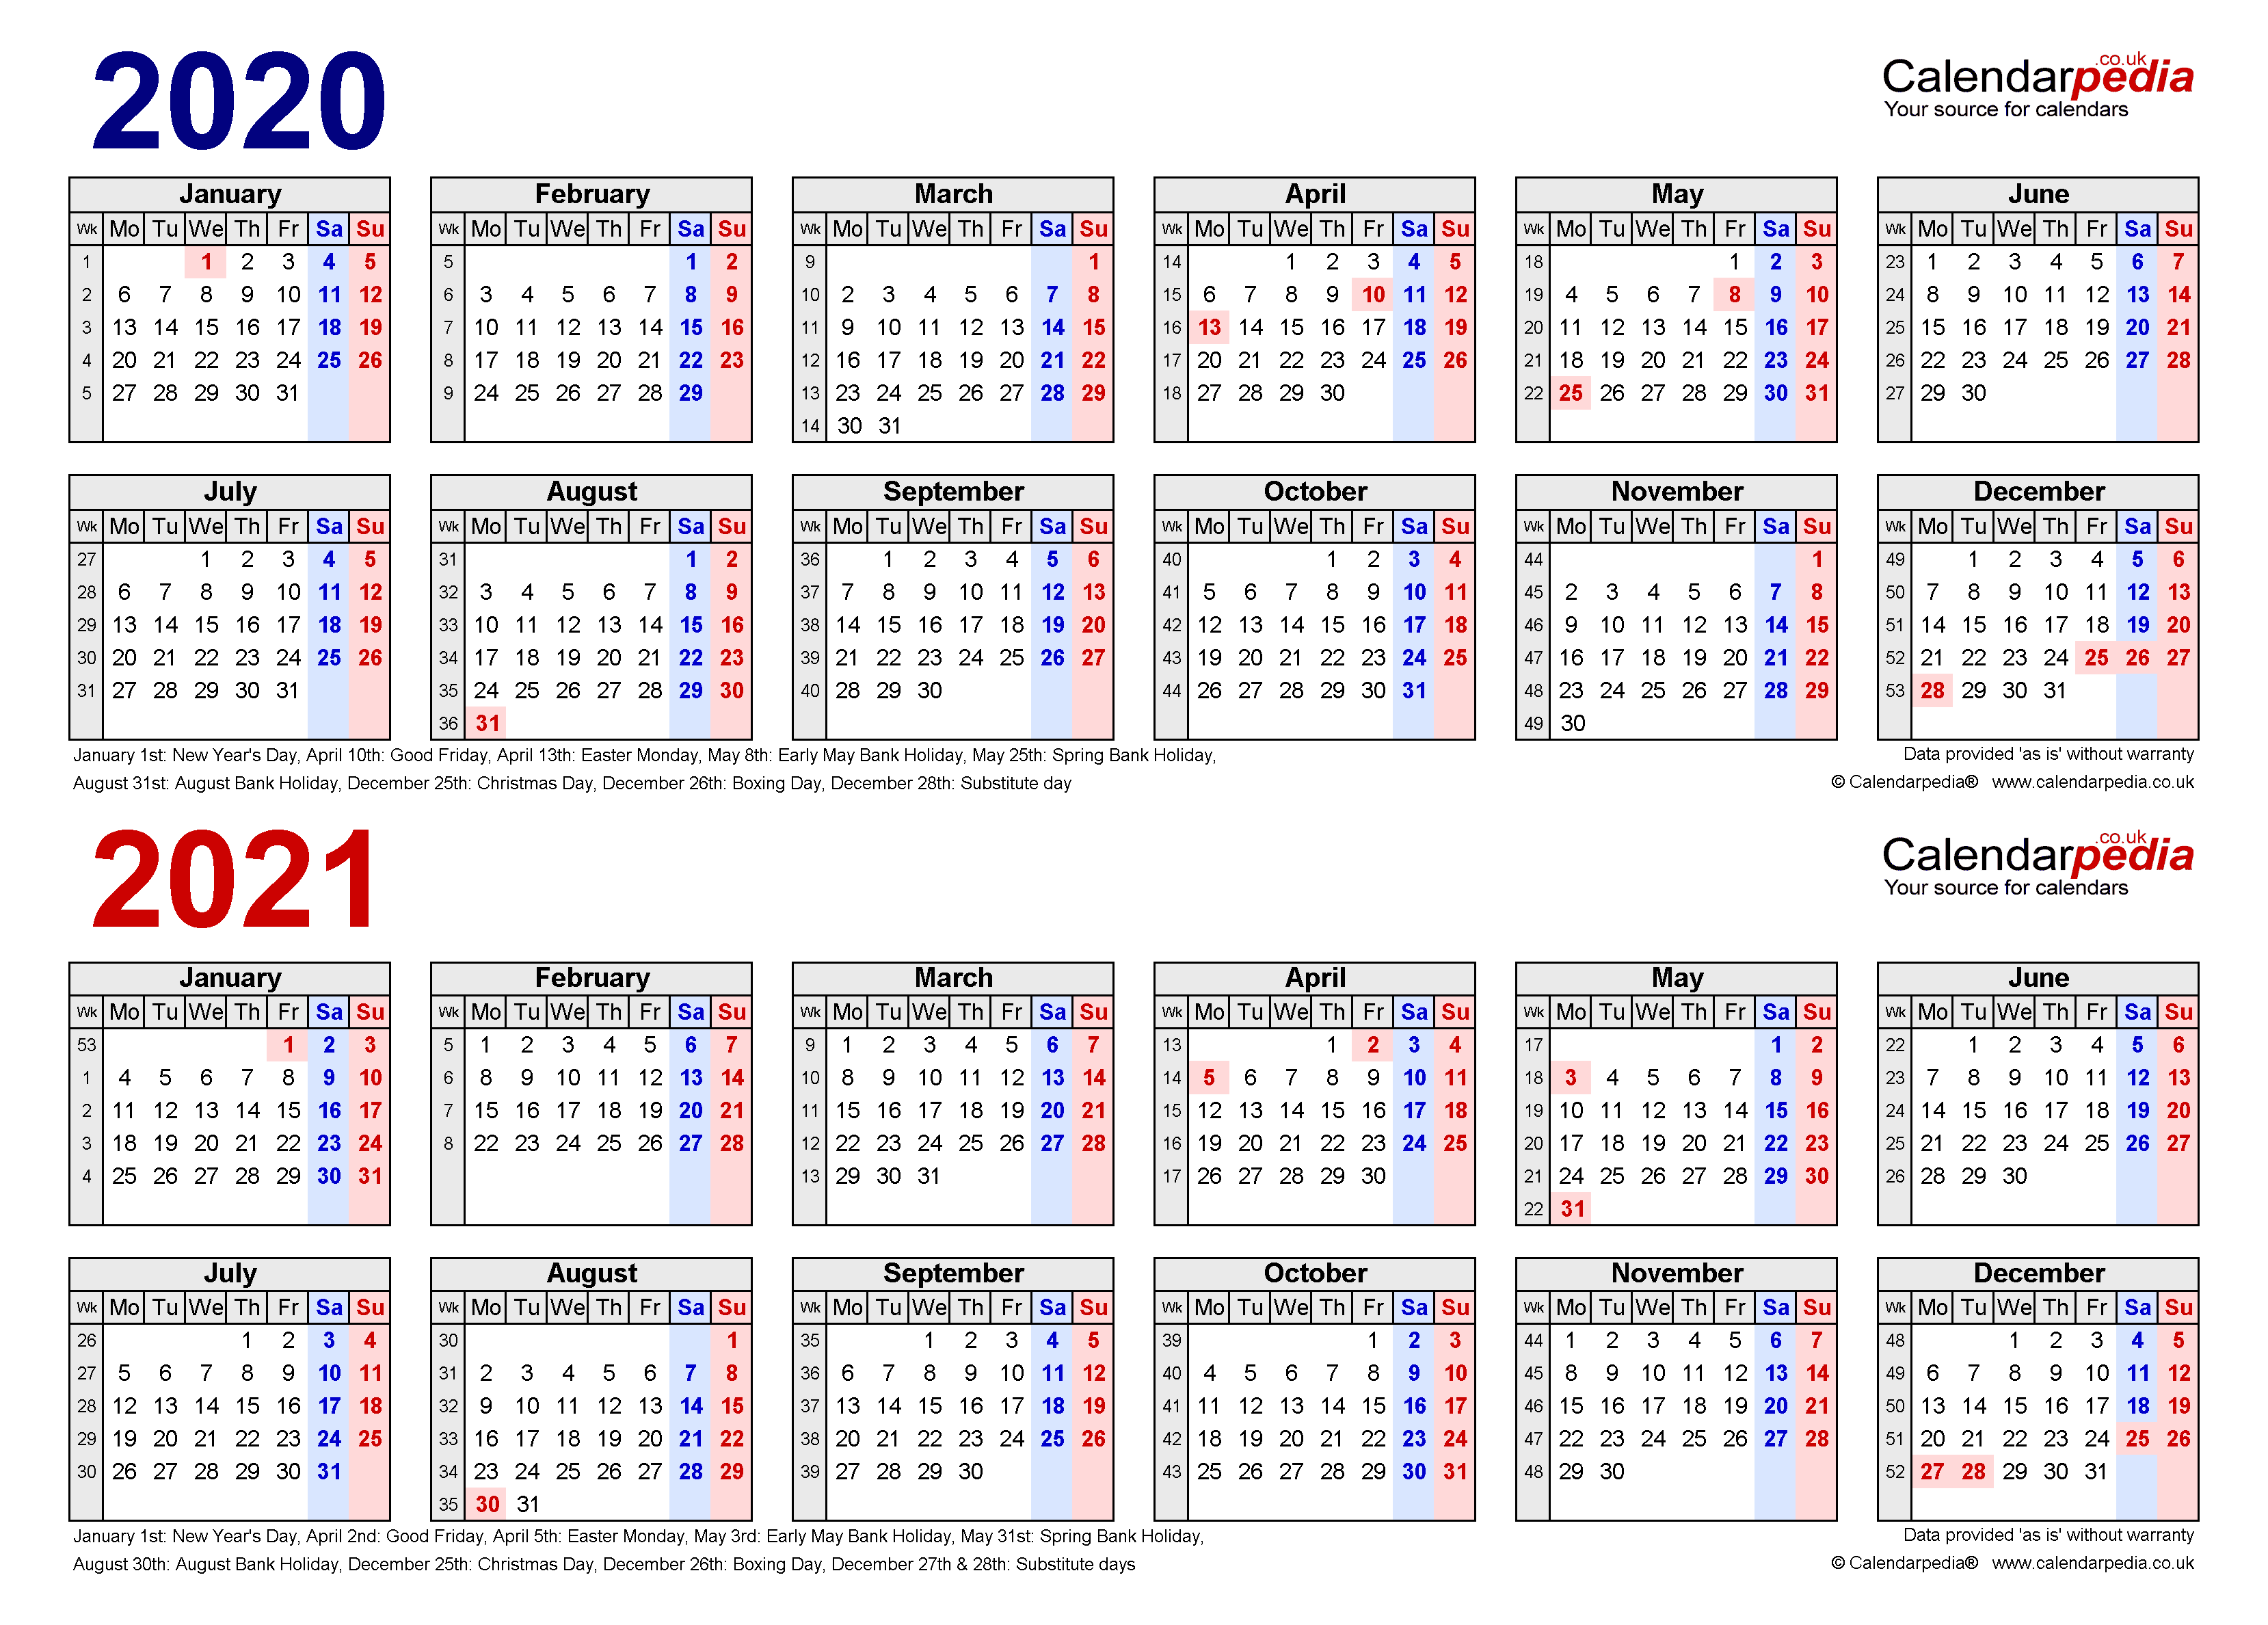 Two Year Calendars For 2020 & 2021 (Uk) For Pdf